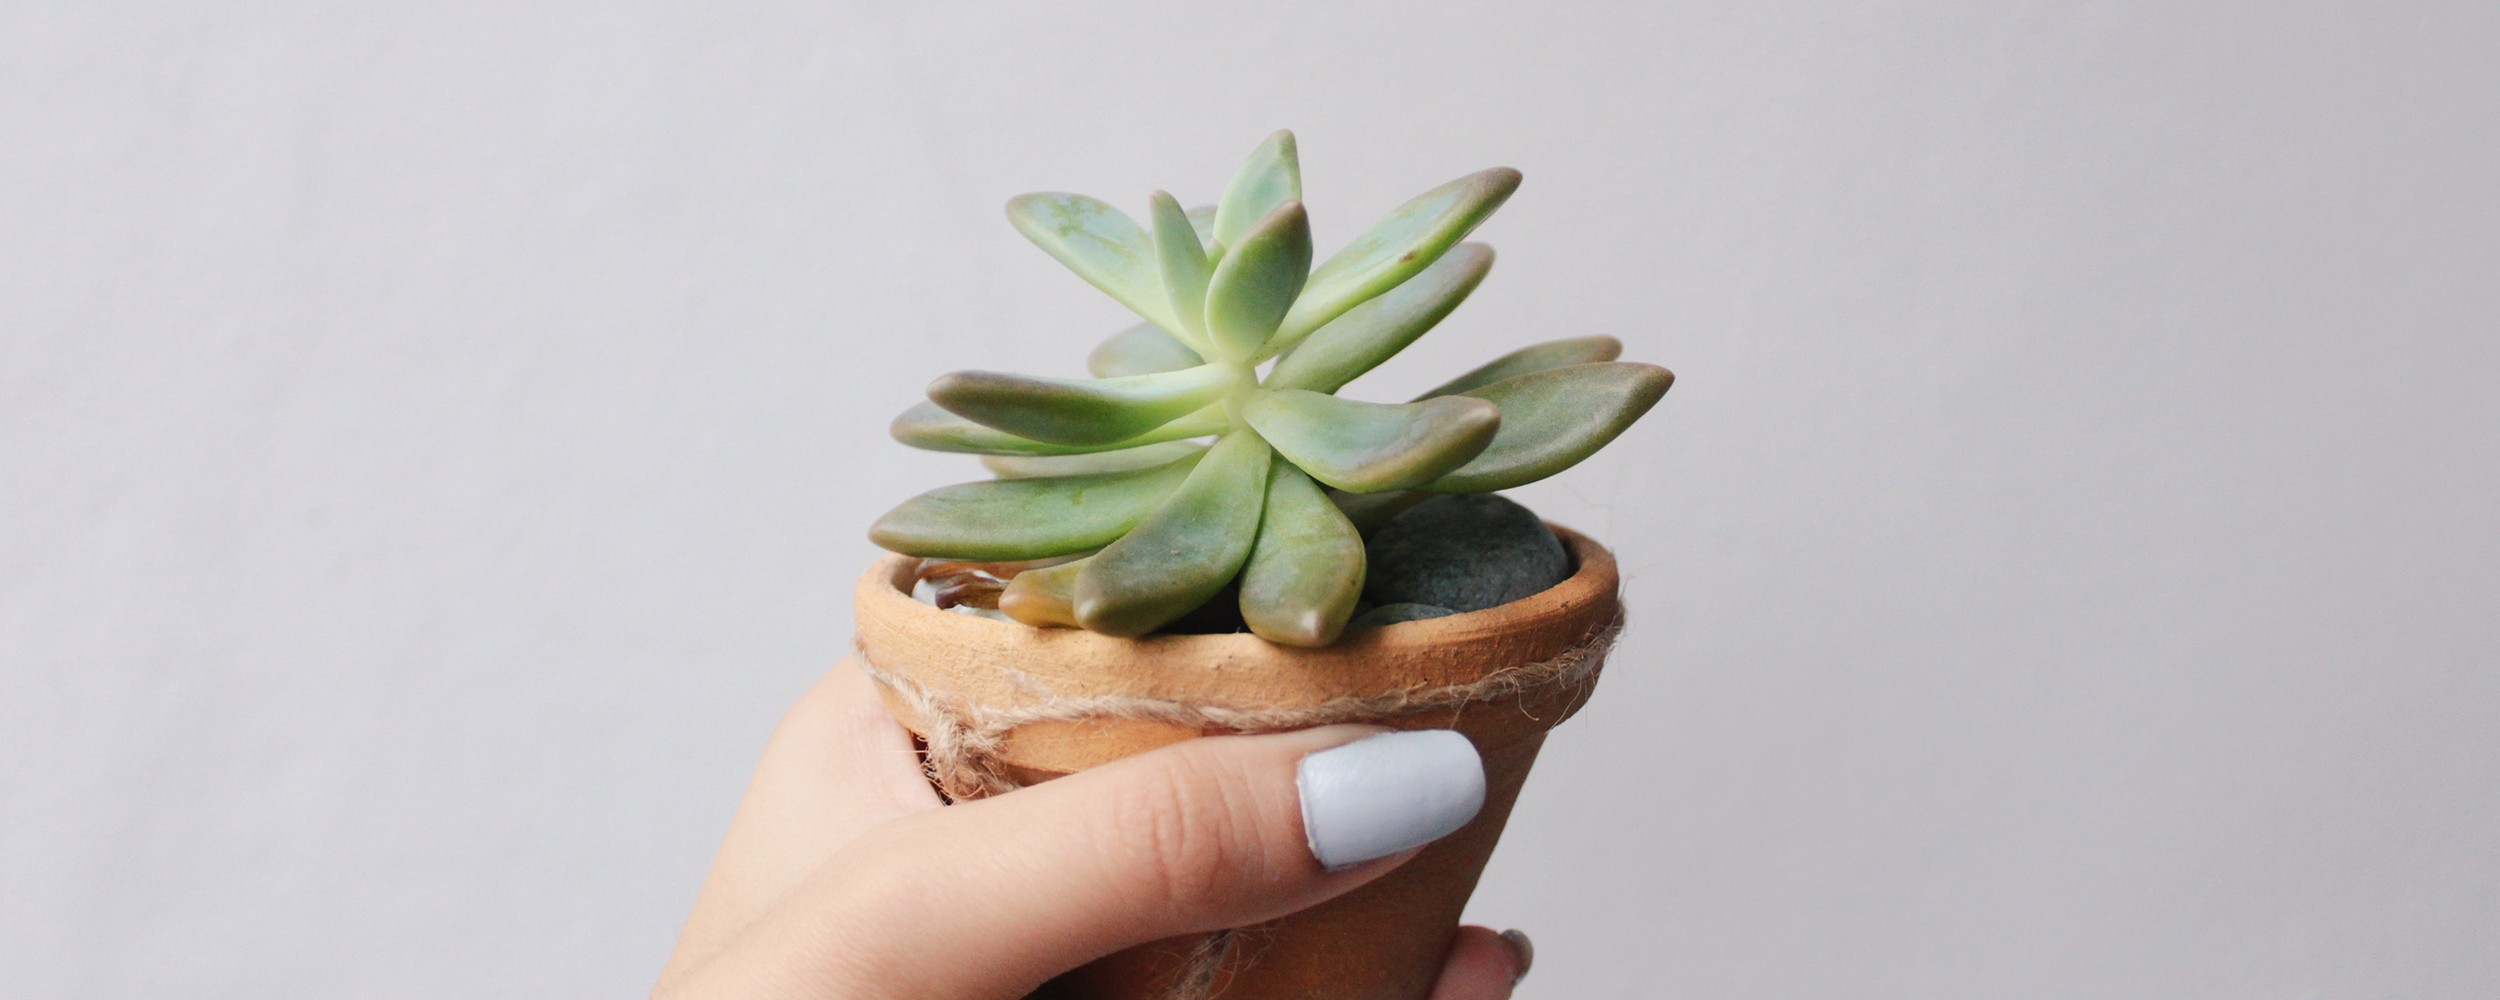 Hand holding a small, potted succulent